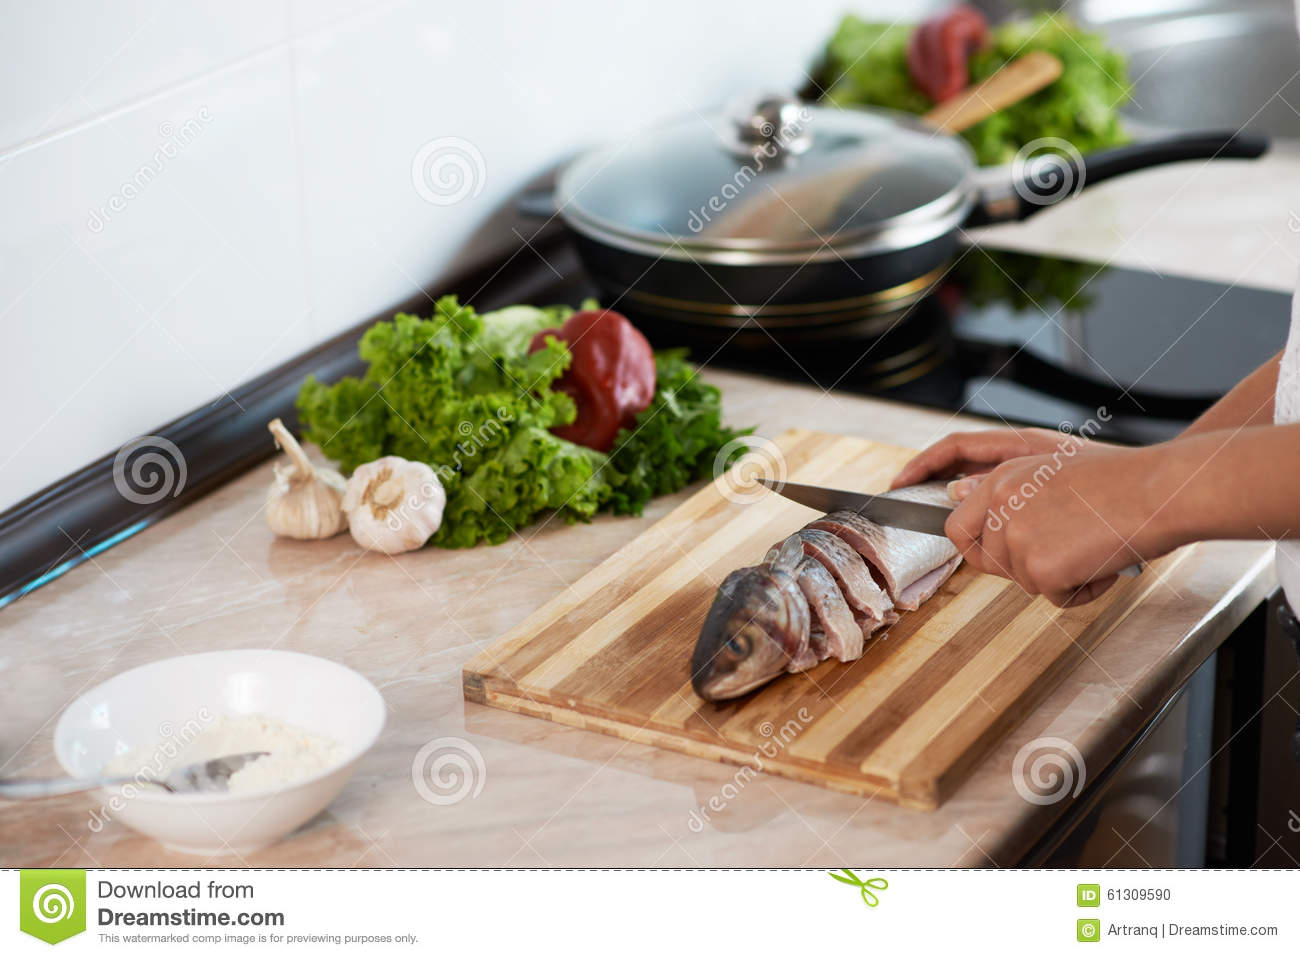 how to cook tasty fish